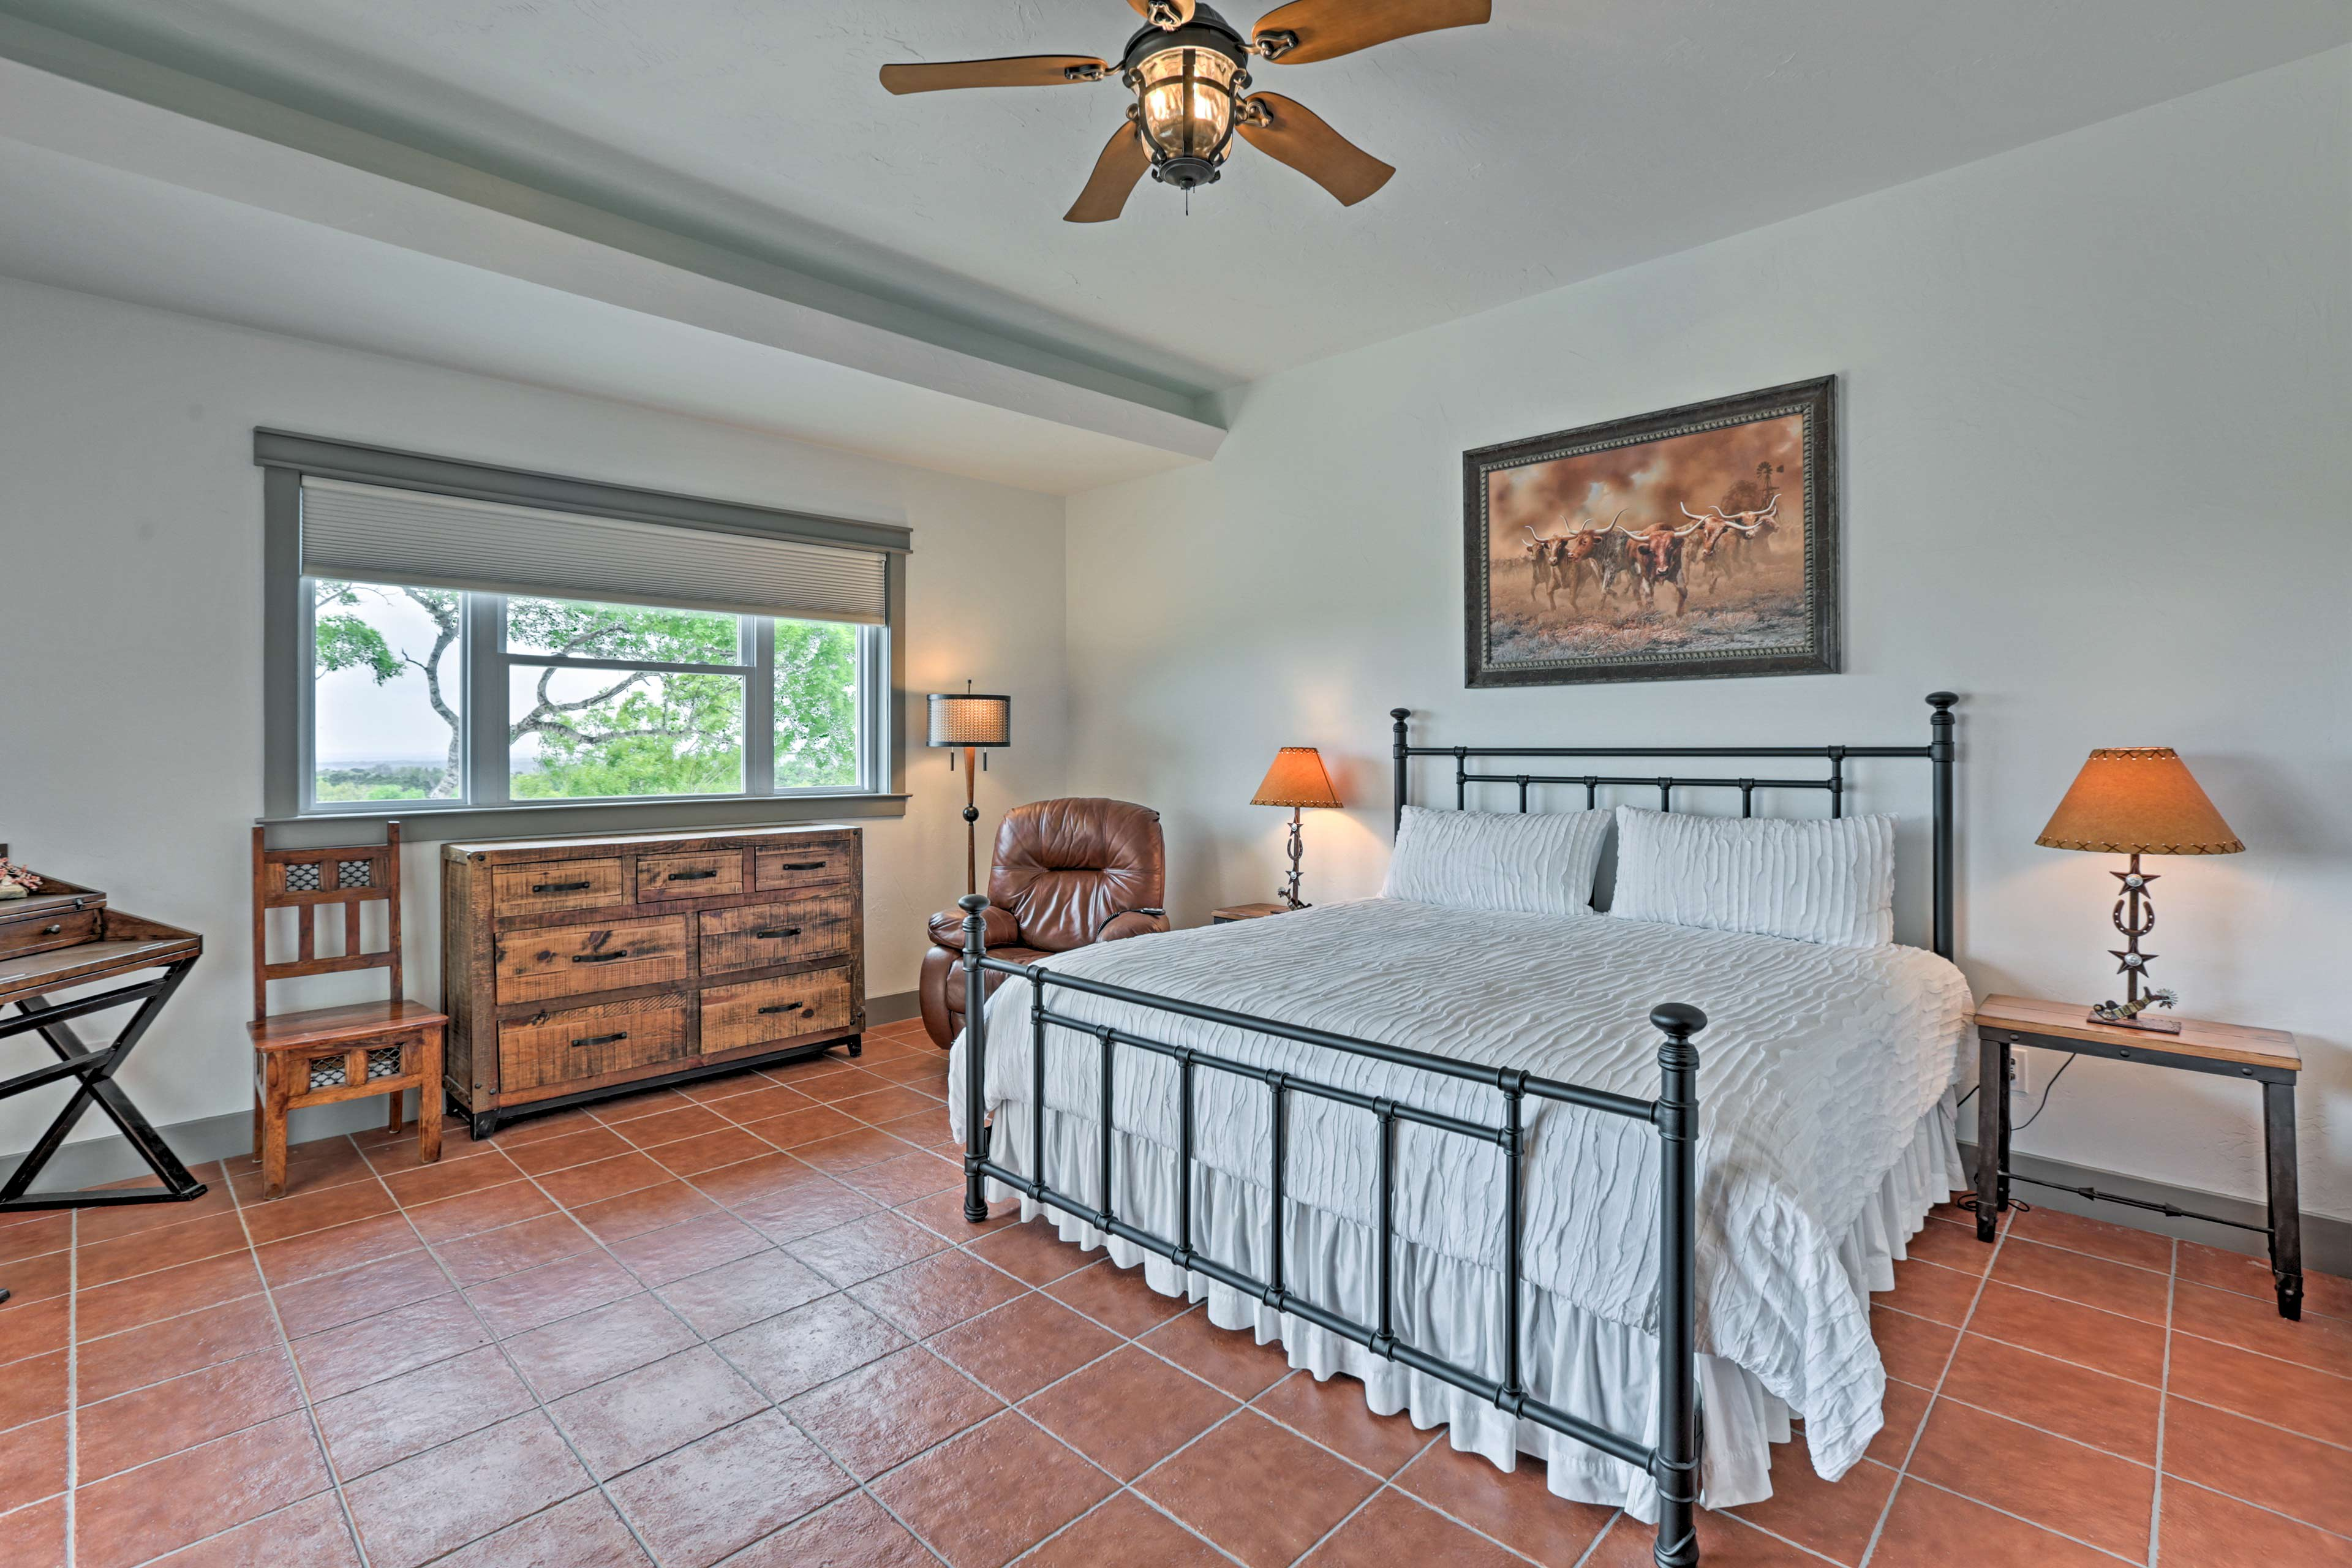 Two lucky travelers can share this master bedroom.